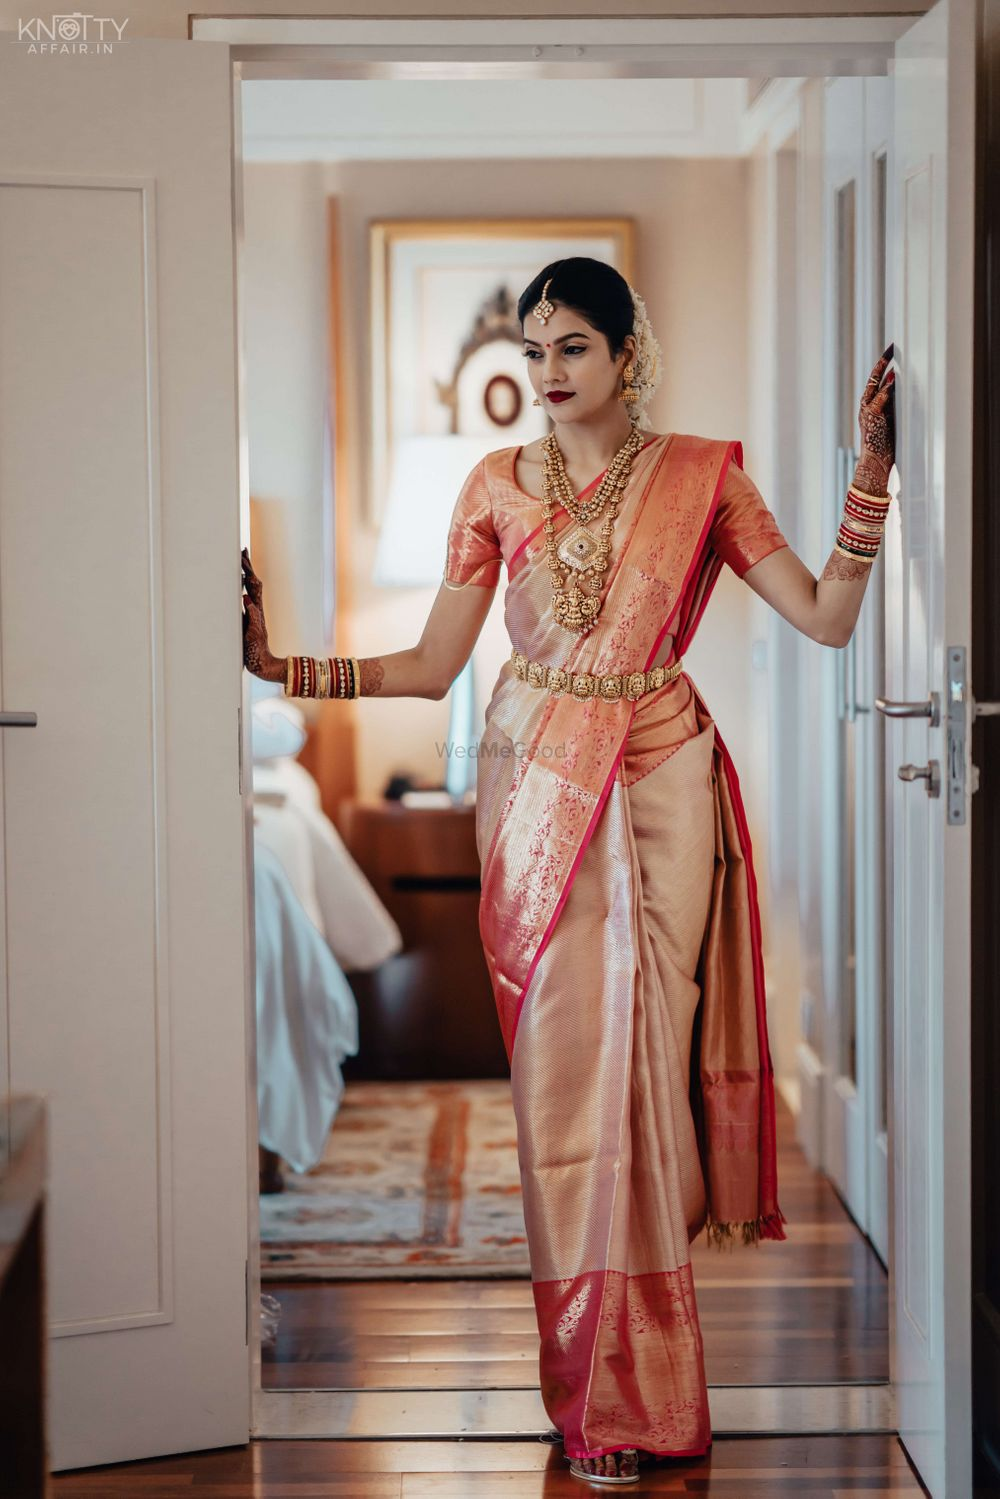 Photo of A candid shot of a bride dressed in her wedding saree